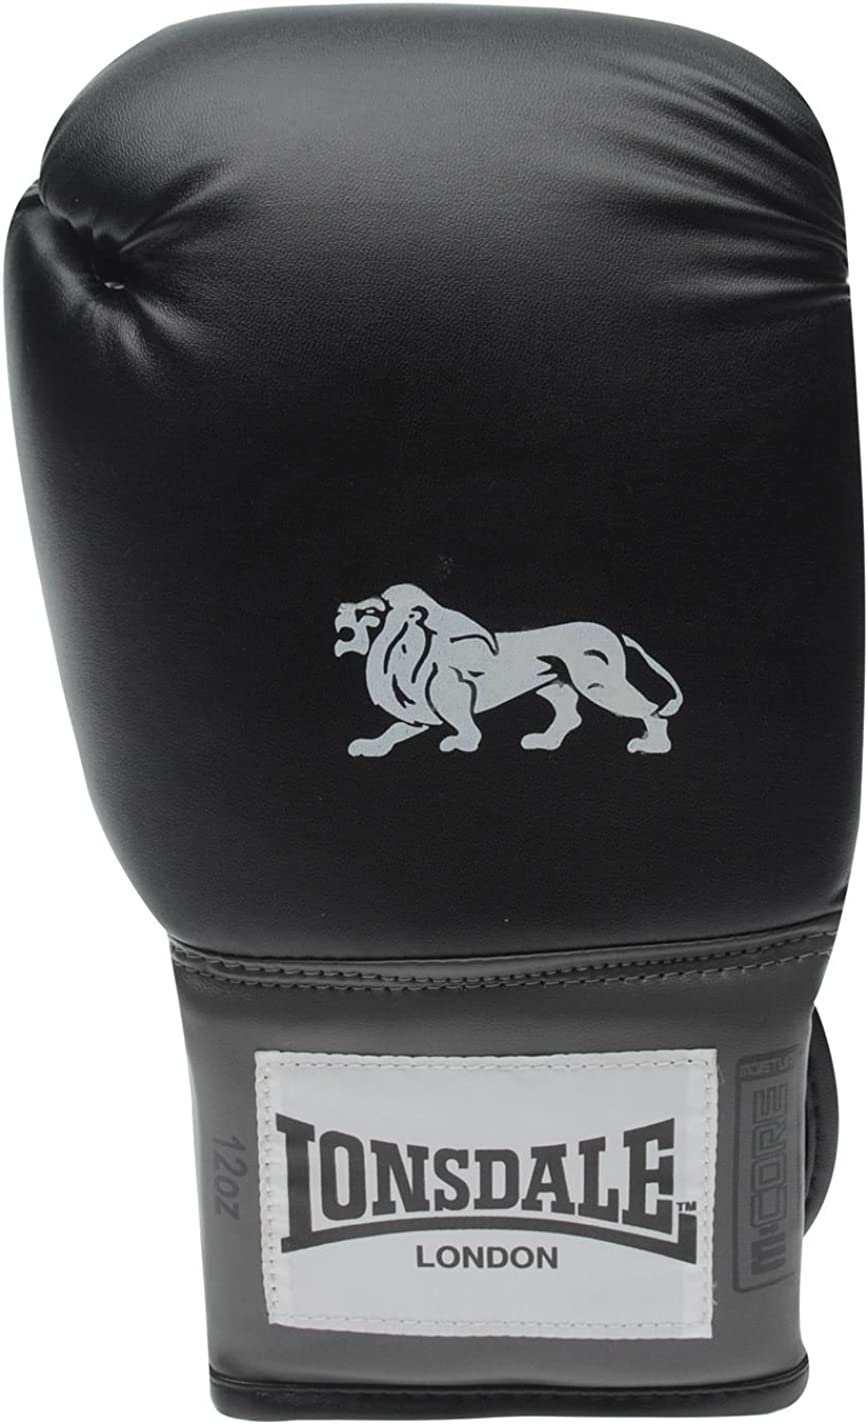 Lonsdale Pro Entrenar Guantes Punching Mitones De Sparring Accesorio Ropa